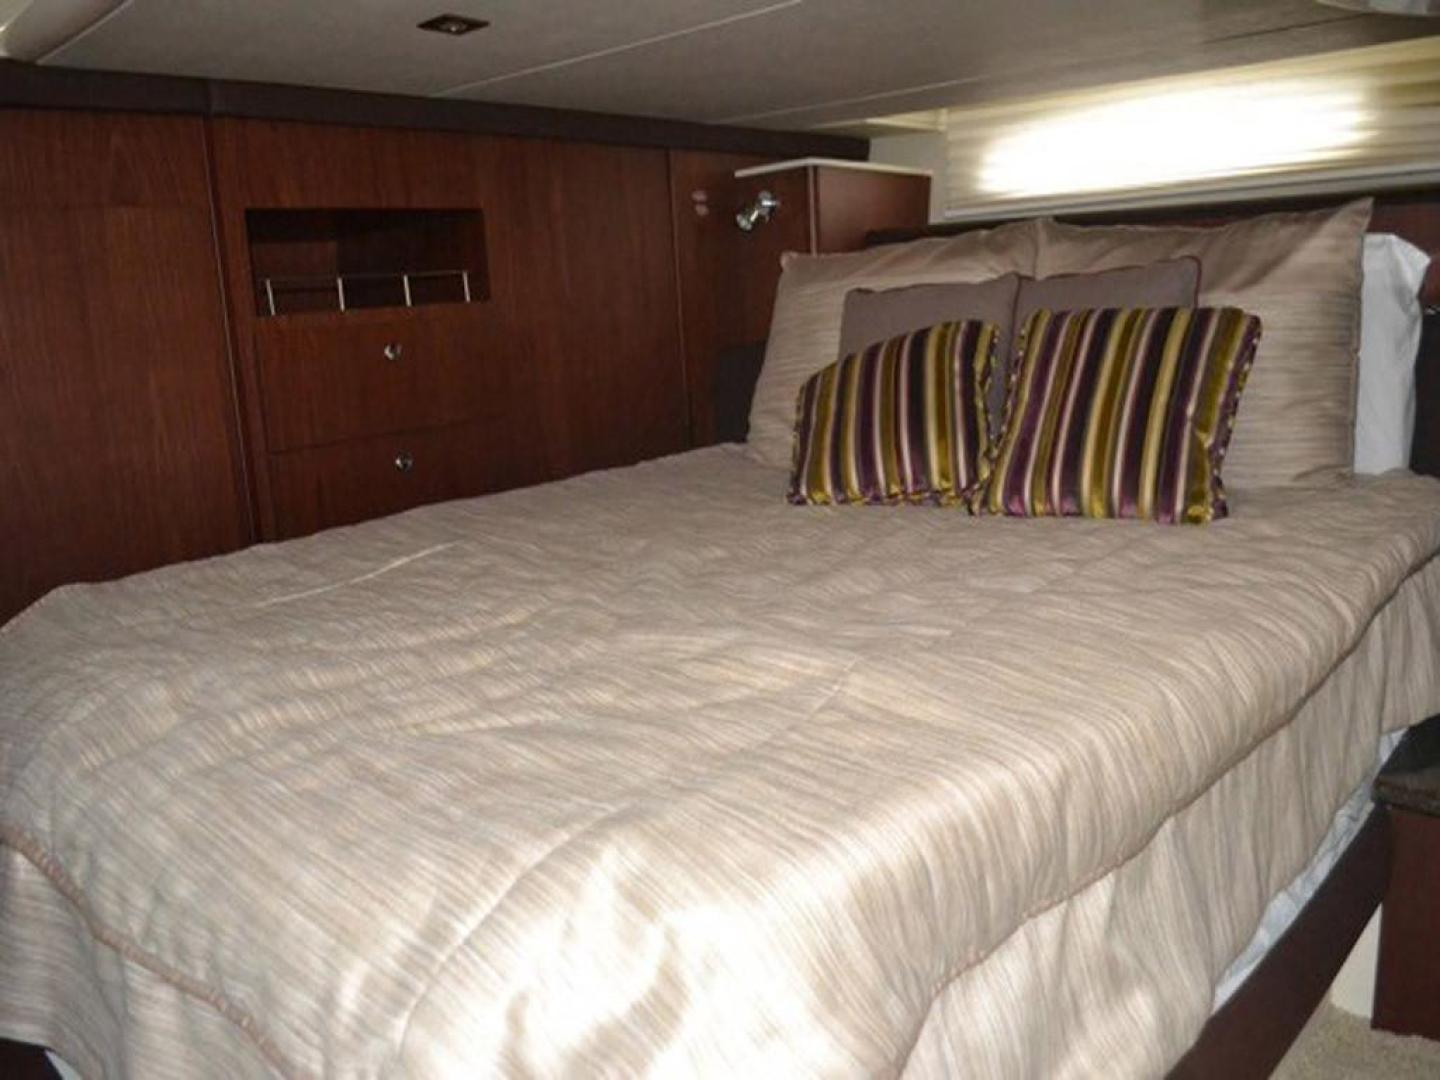 Meridian-441 Sedan Bridge 2012-Higher Powered Palm Coast-Florida-United States-Master Stateroom-141645 | Thumbnail